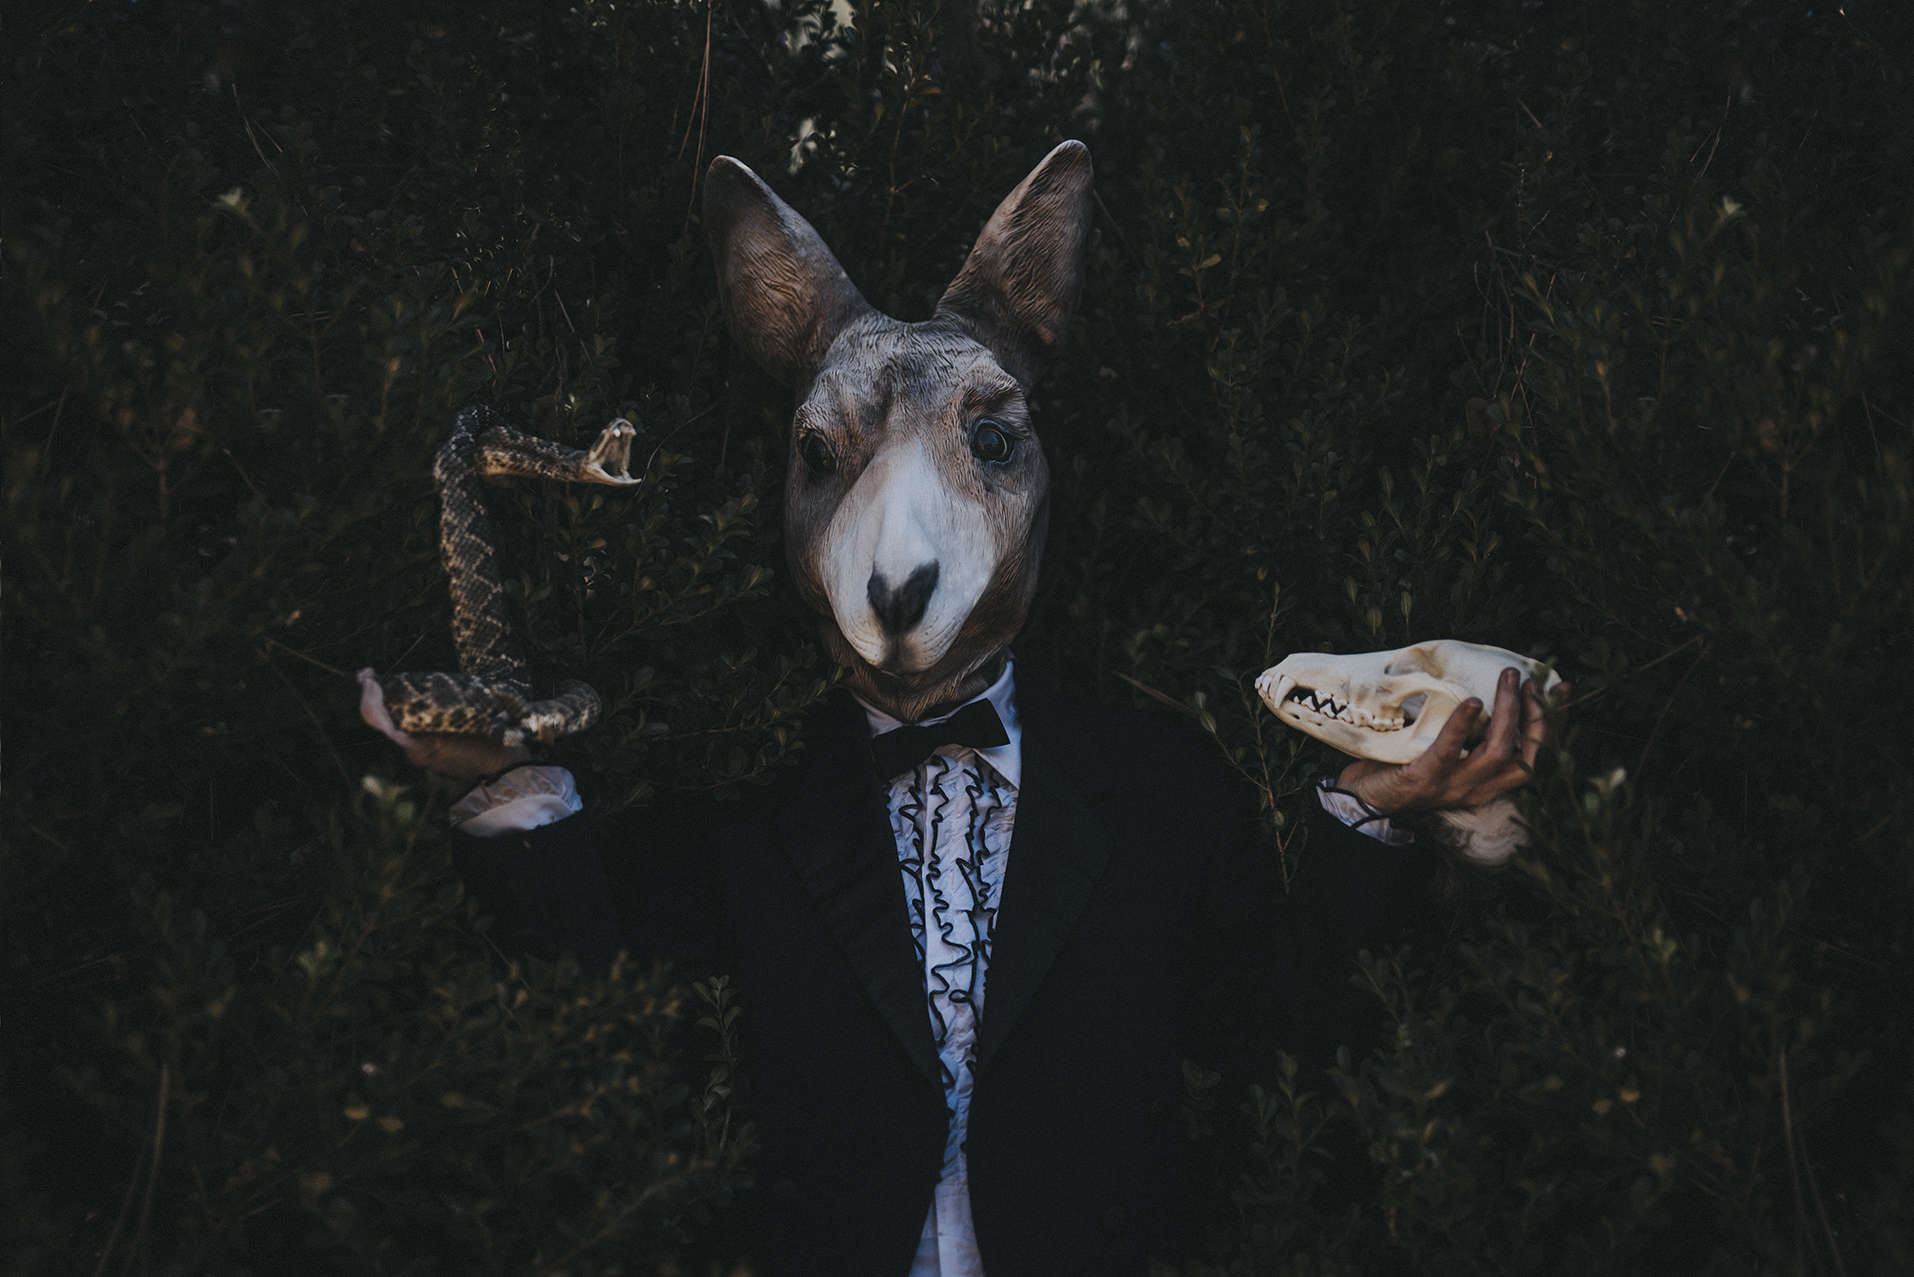 animal mask photography